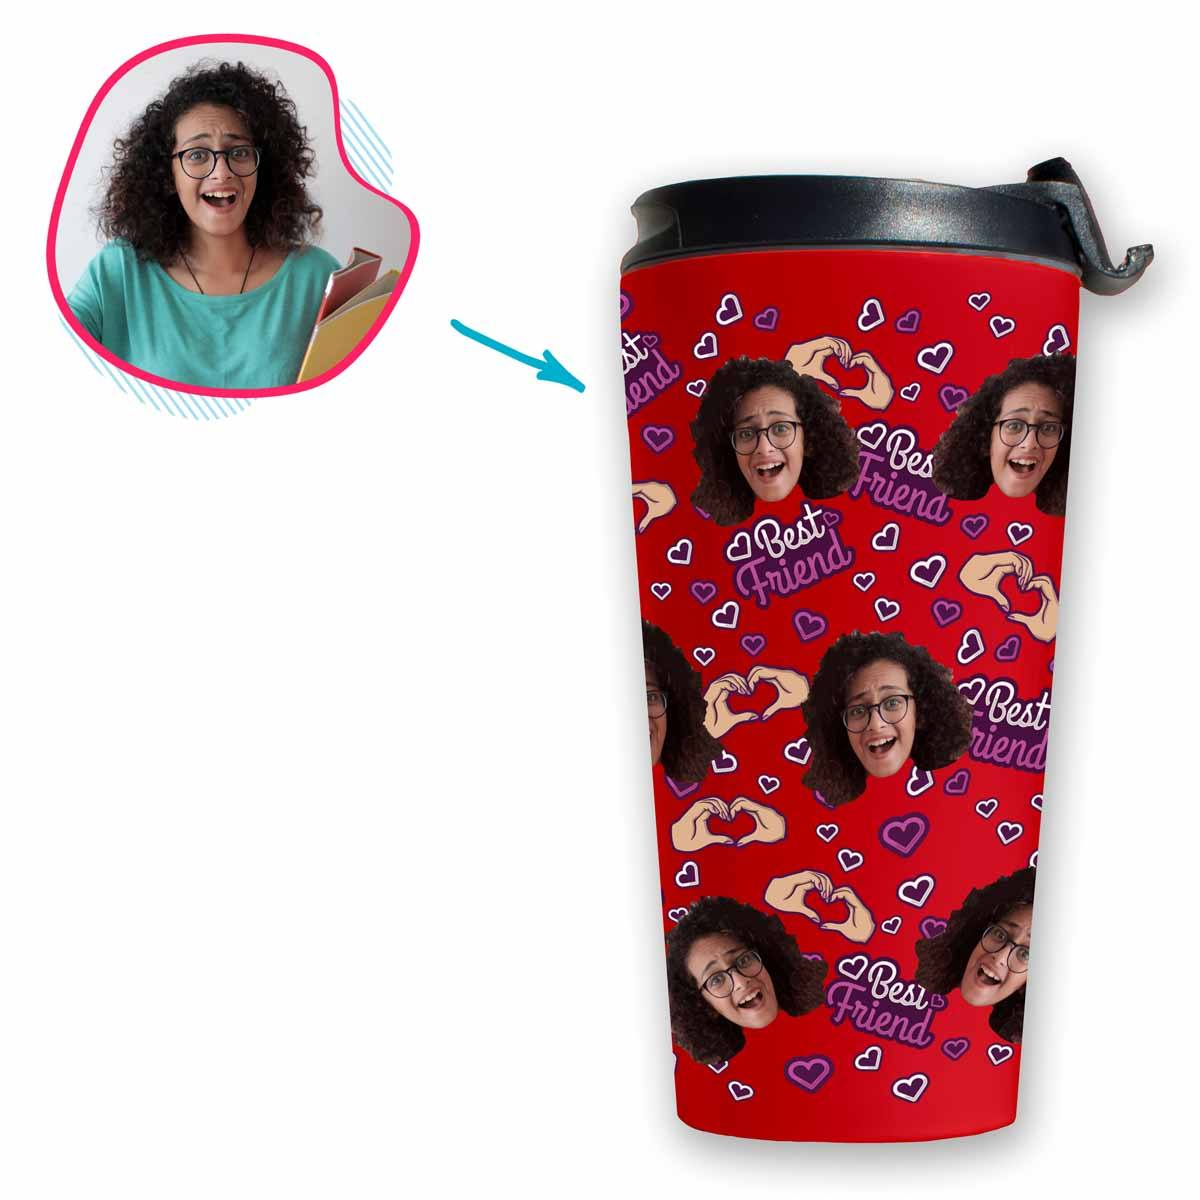 BFF for Her Personalized Travel Mug